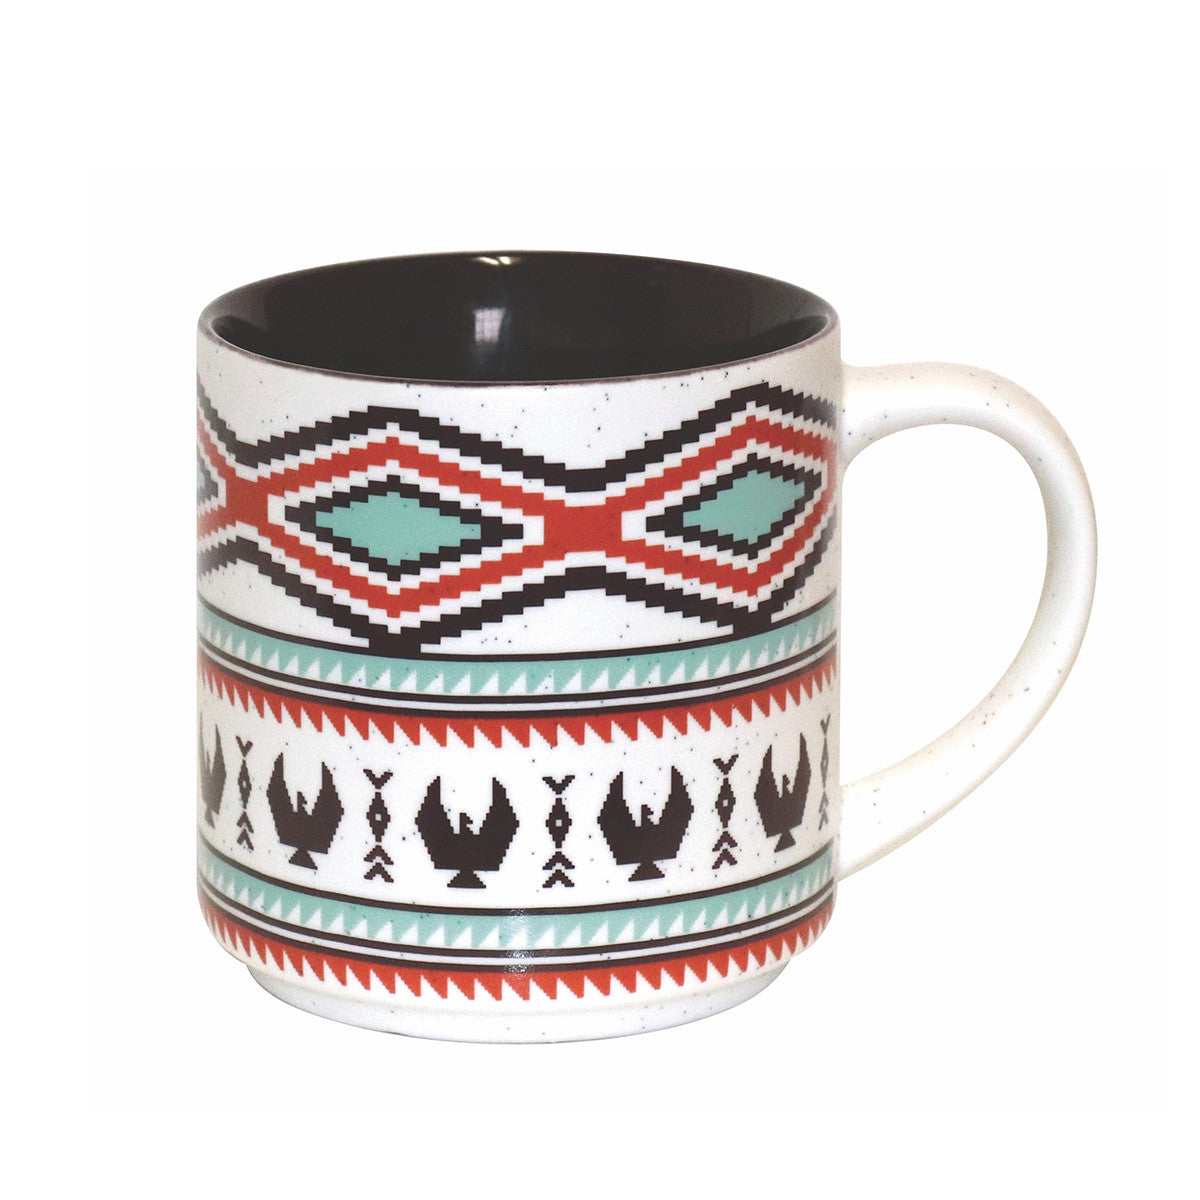 Ceramic Mug by Leila Stogan, Musqueam